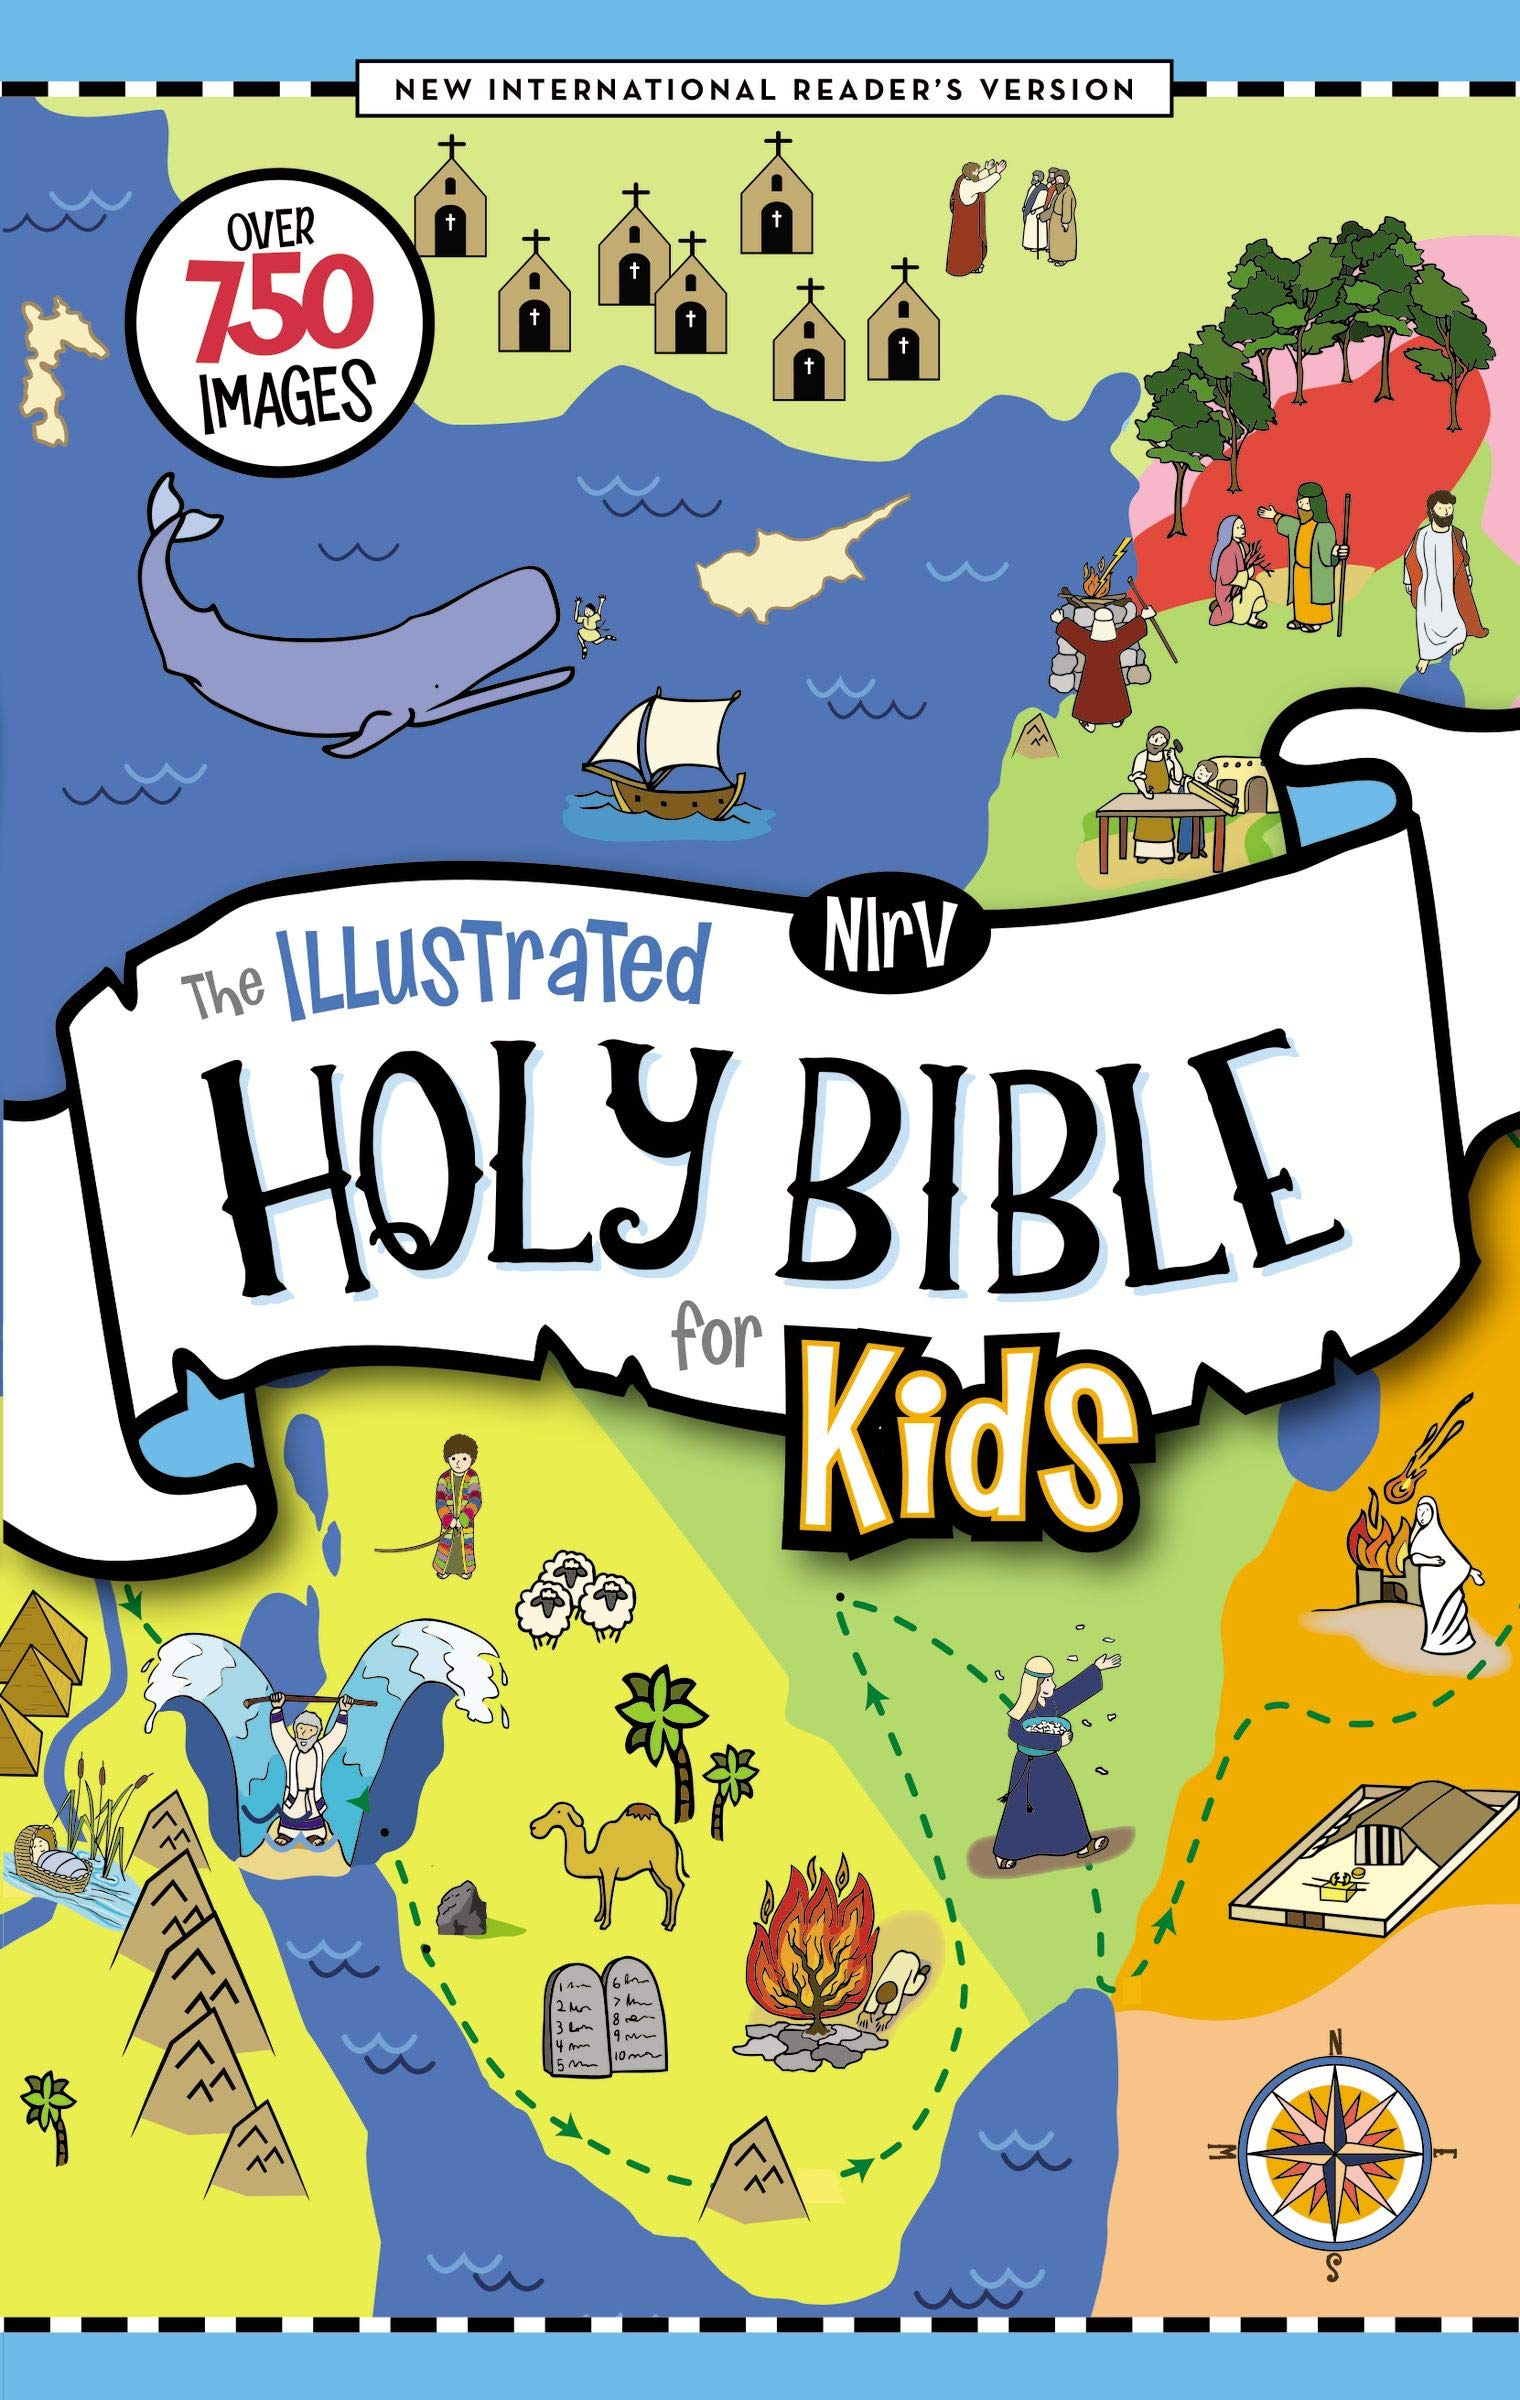 Nirv The Illustrated Holy Bible For Kids Hardcover Full Color Comfort Print Over 750 Images Zondervan 0025986765798 Amazon Com Books